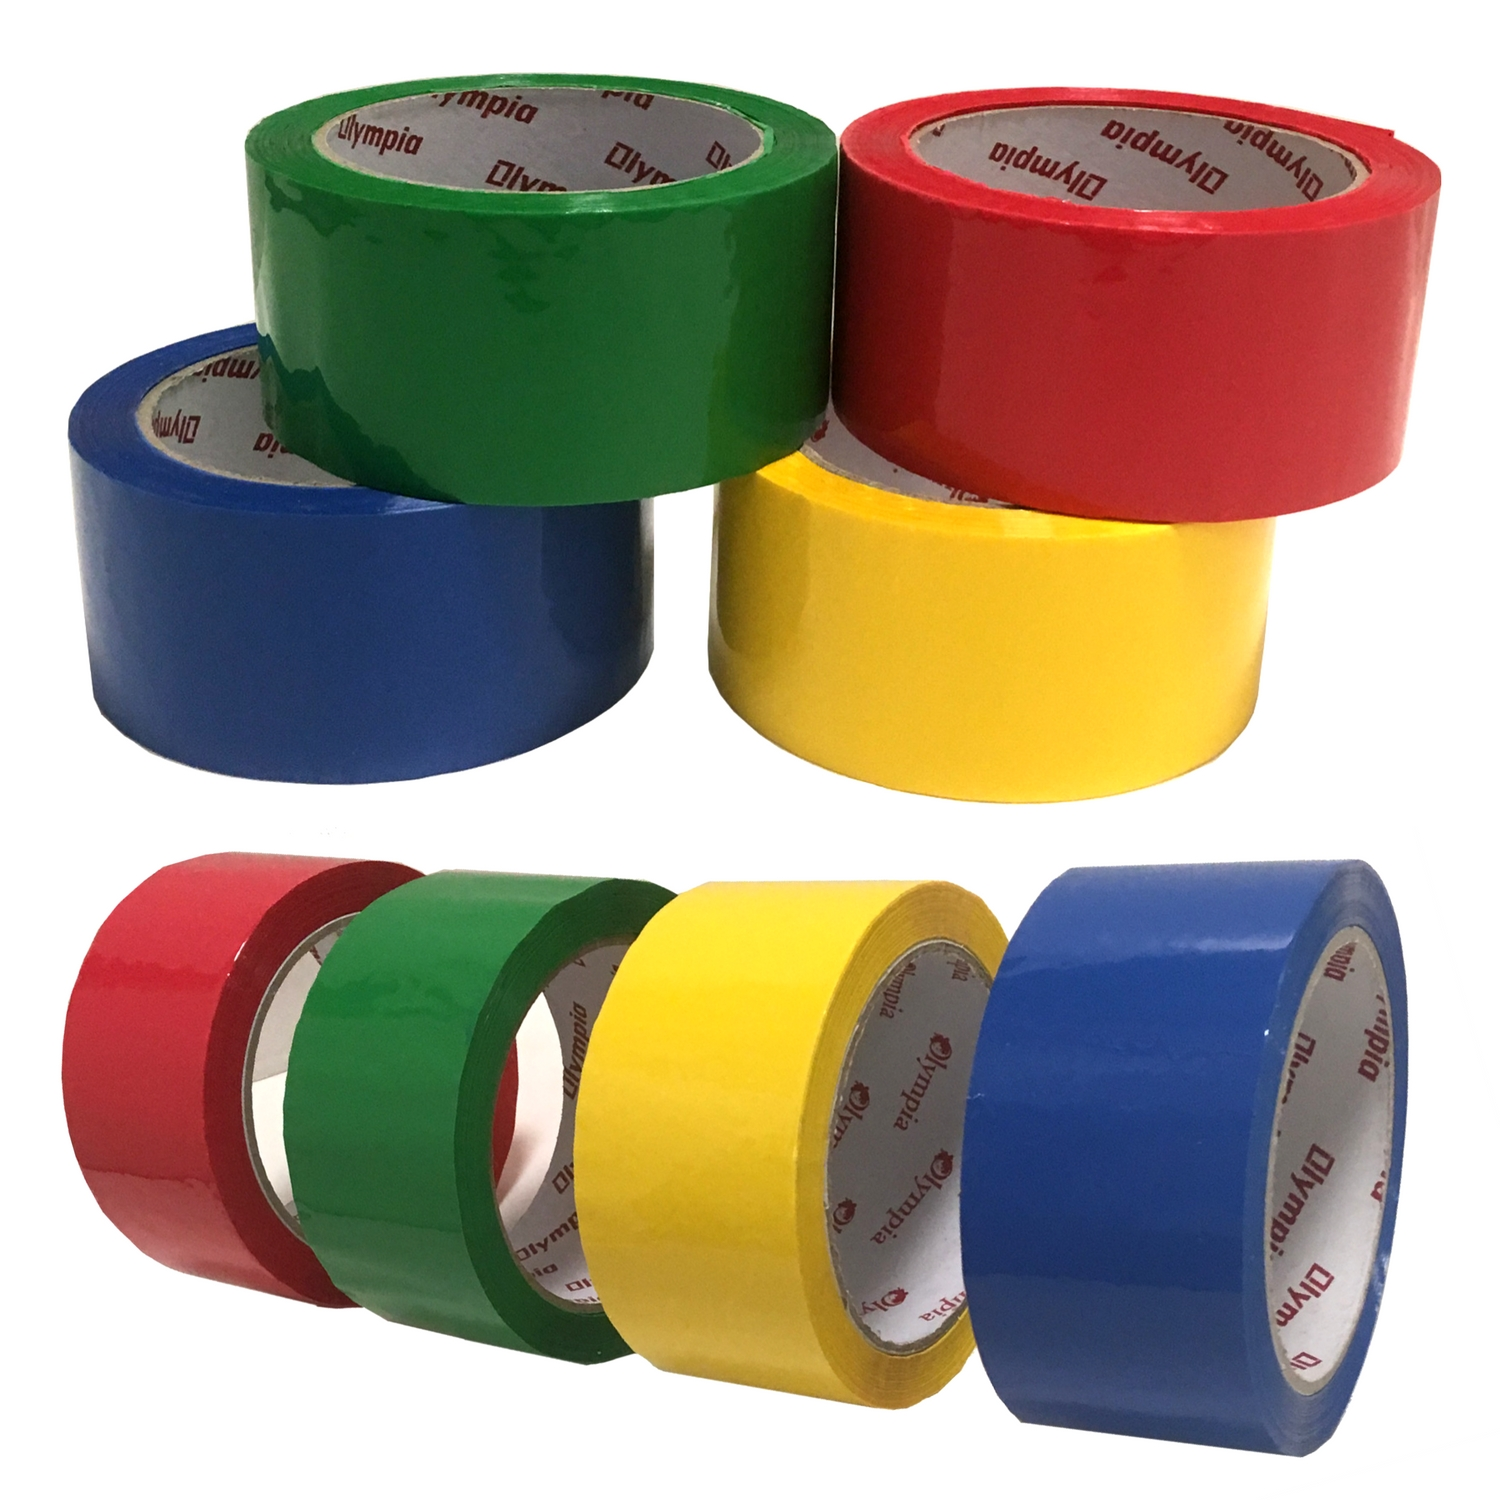 Coloured Polypropylene Tape Packaging Products Online